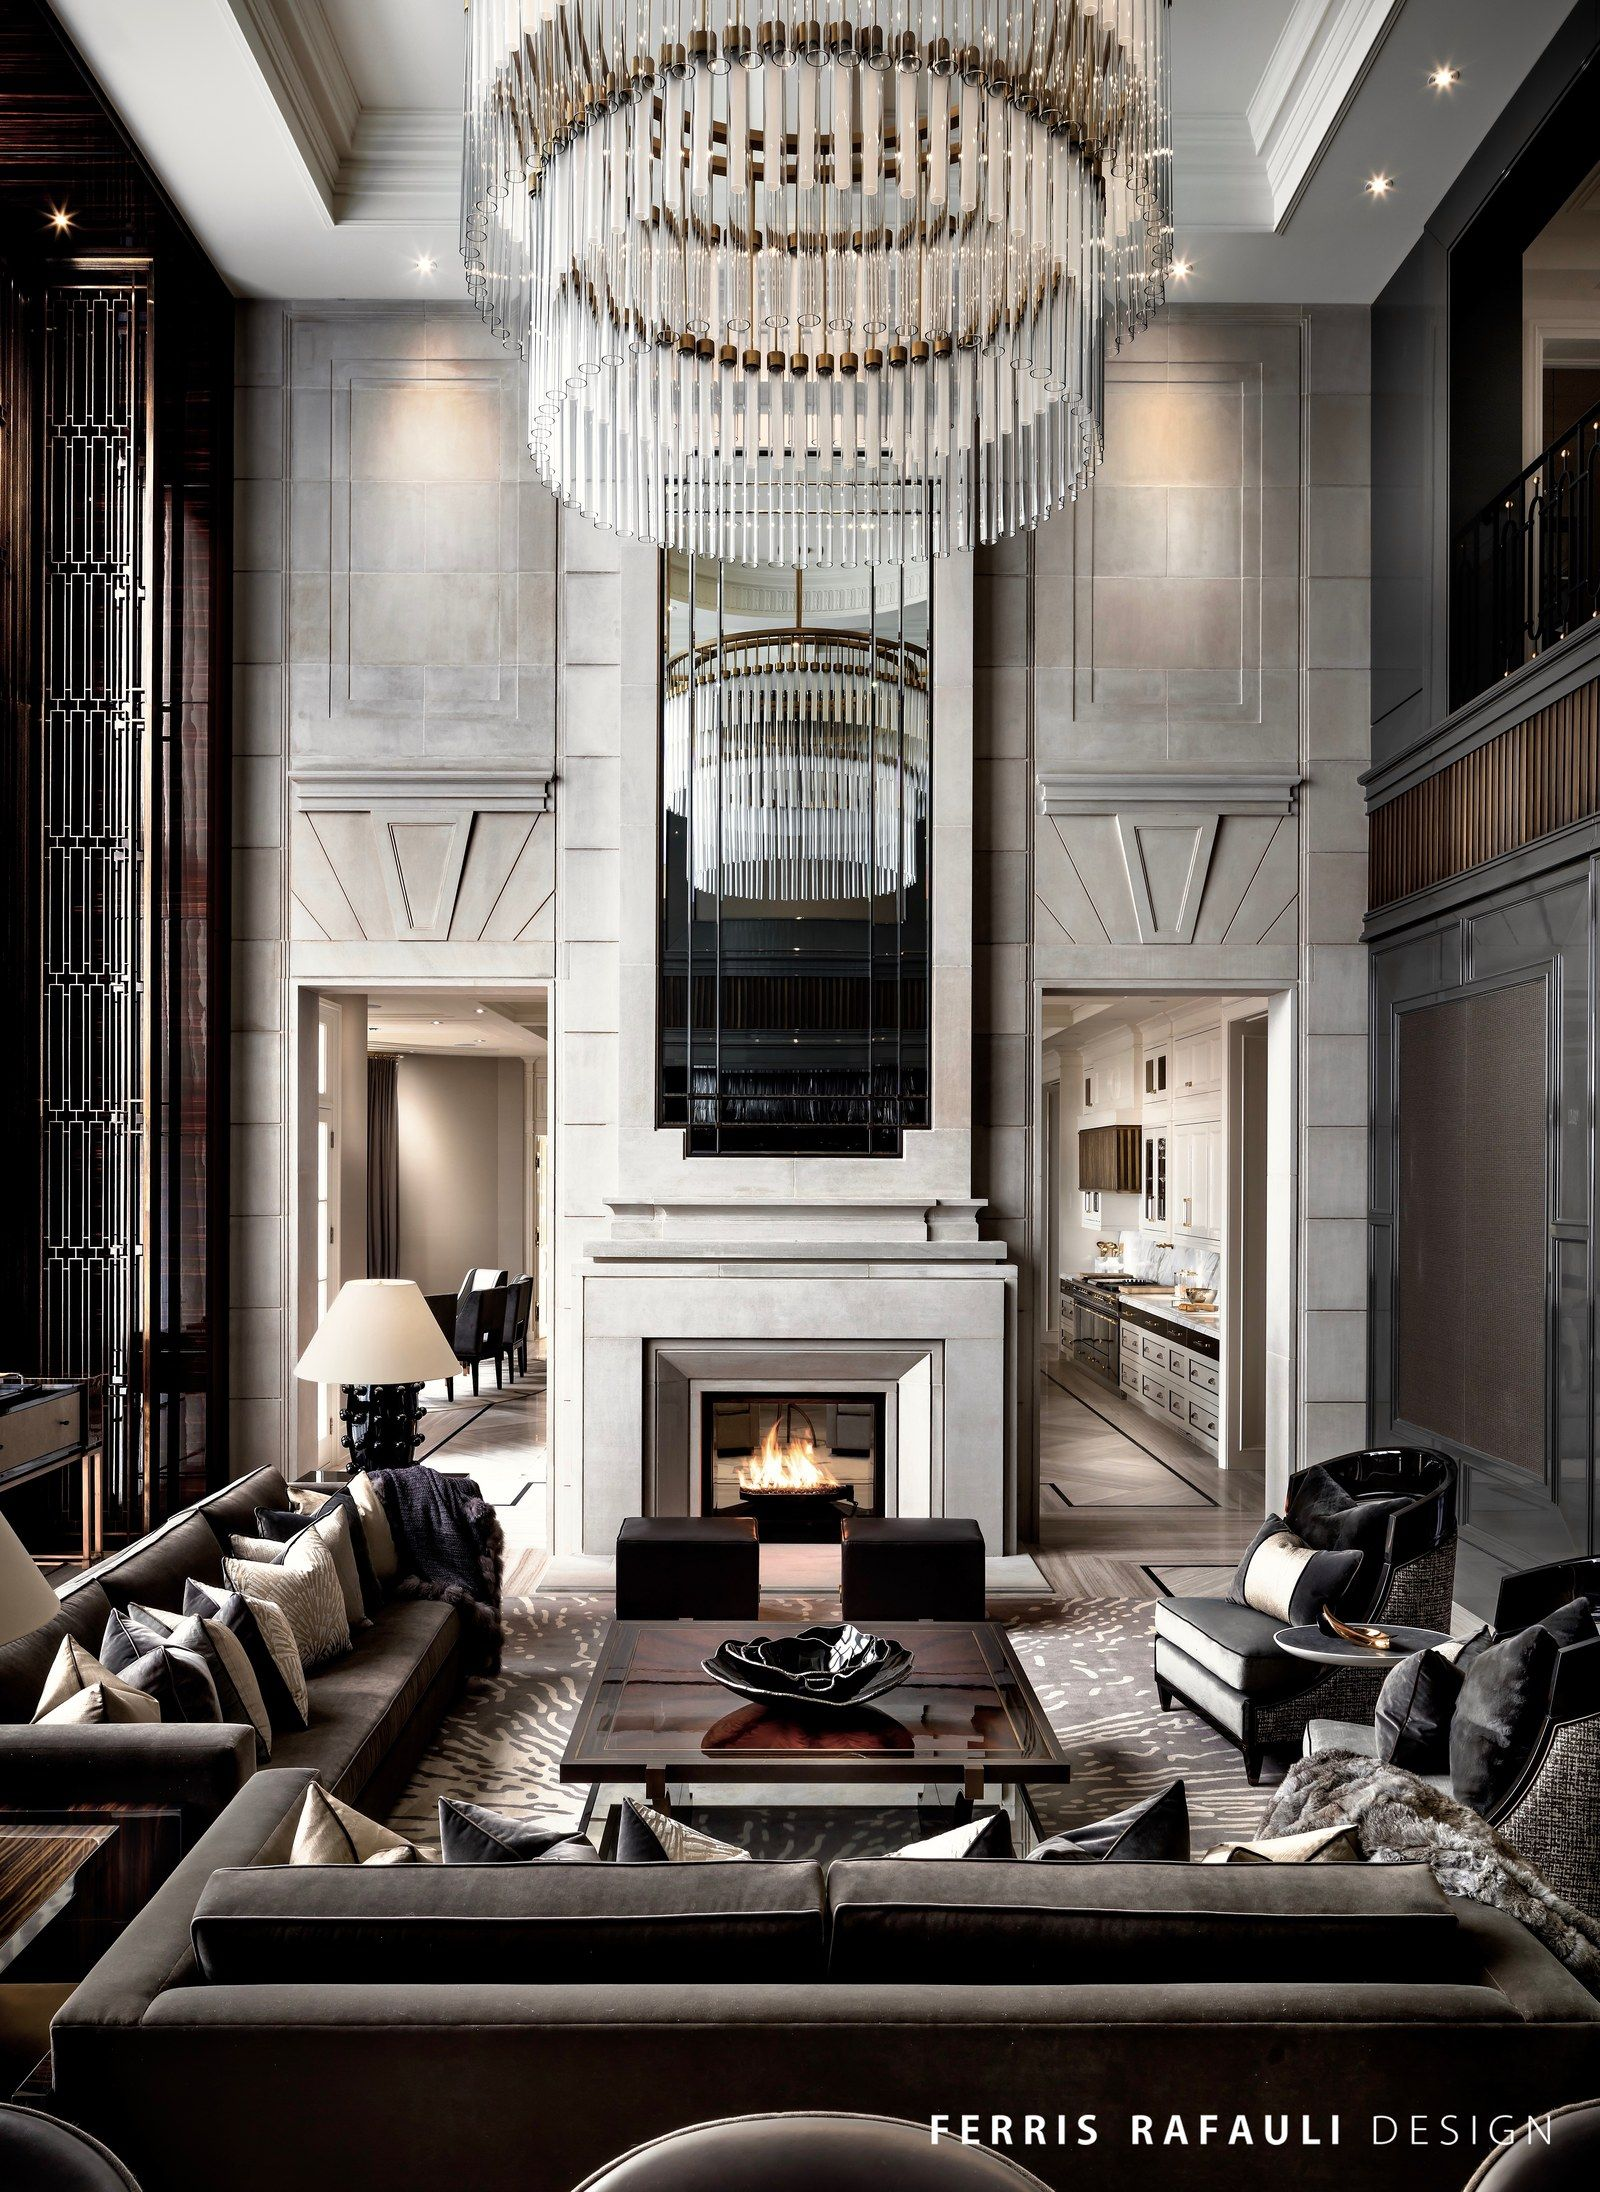 Ferris rafauli specializes in integrating ultra luxury Luxur home interior